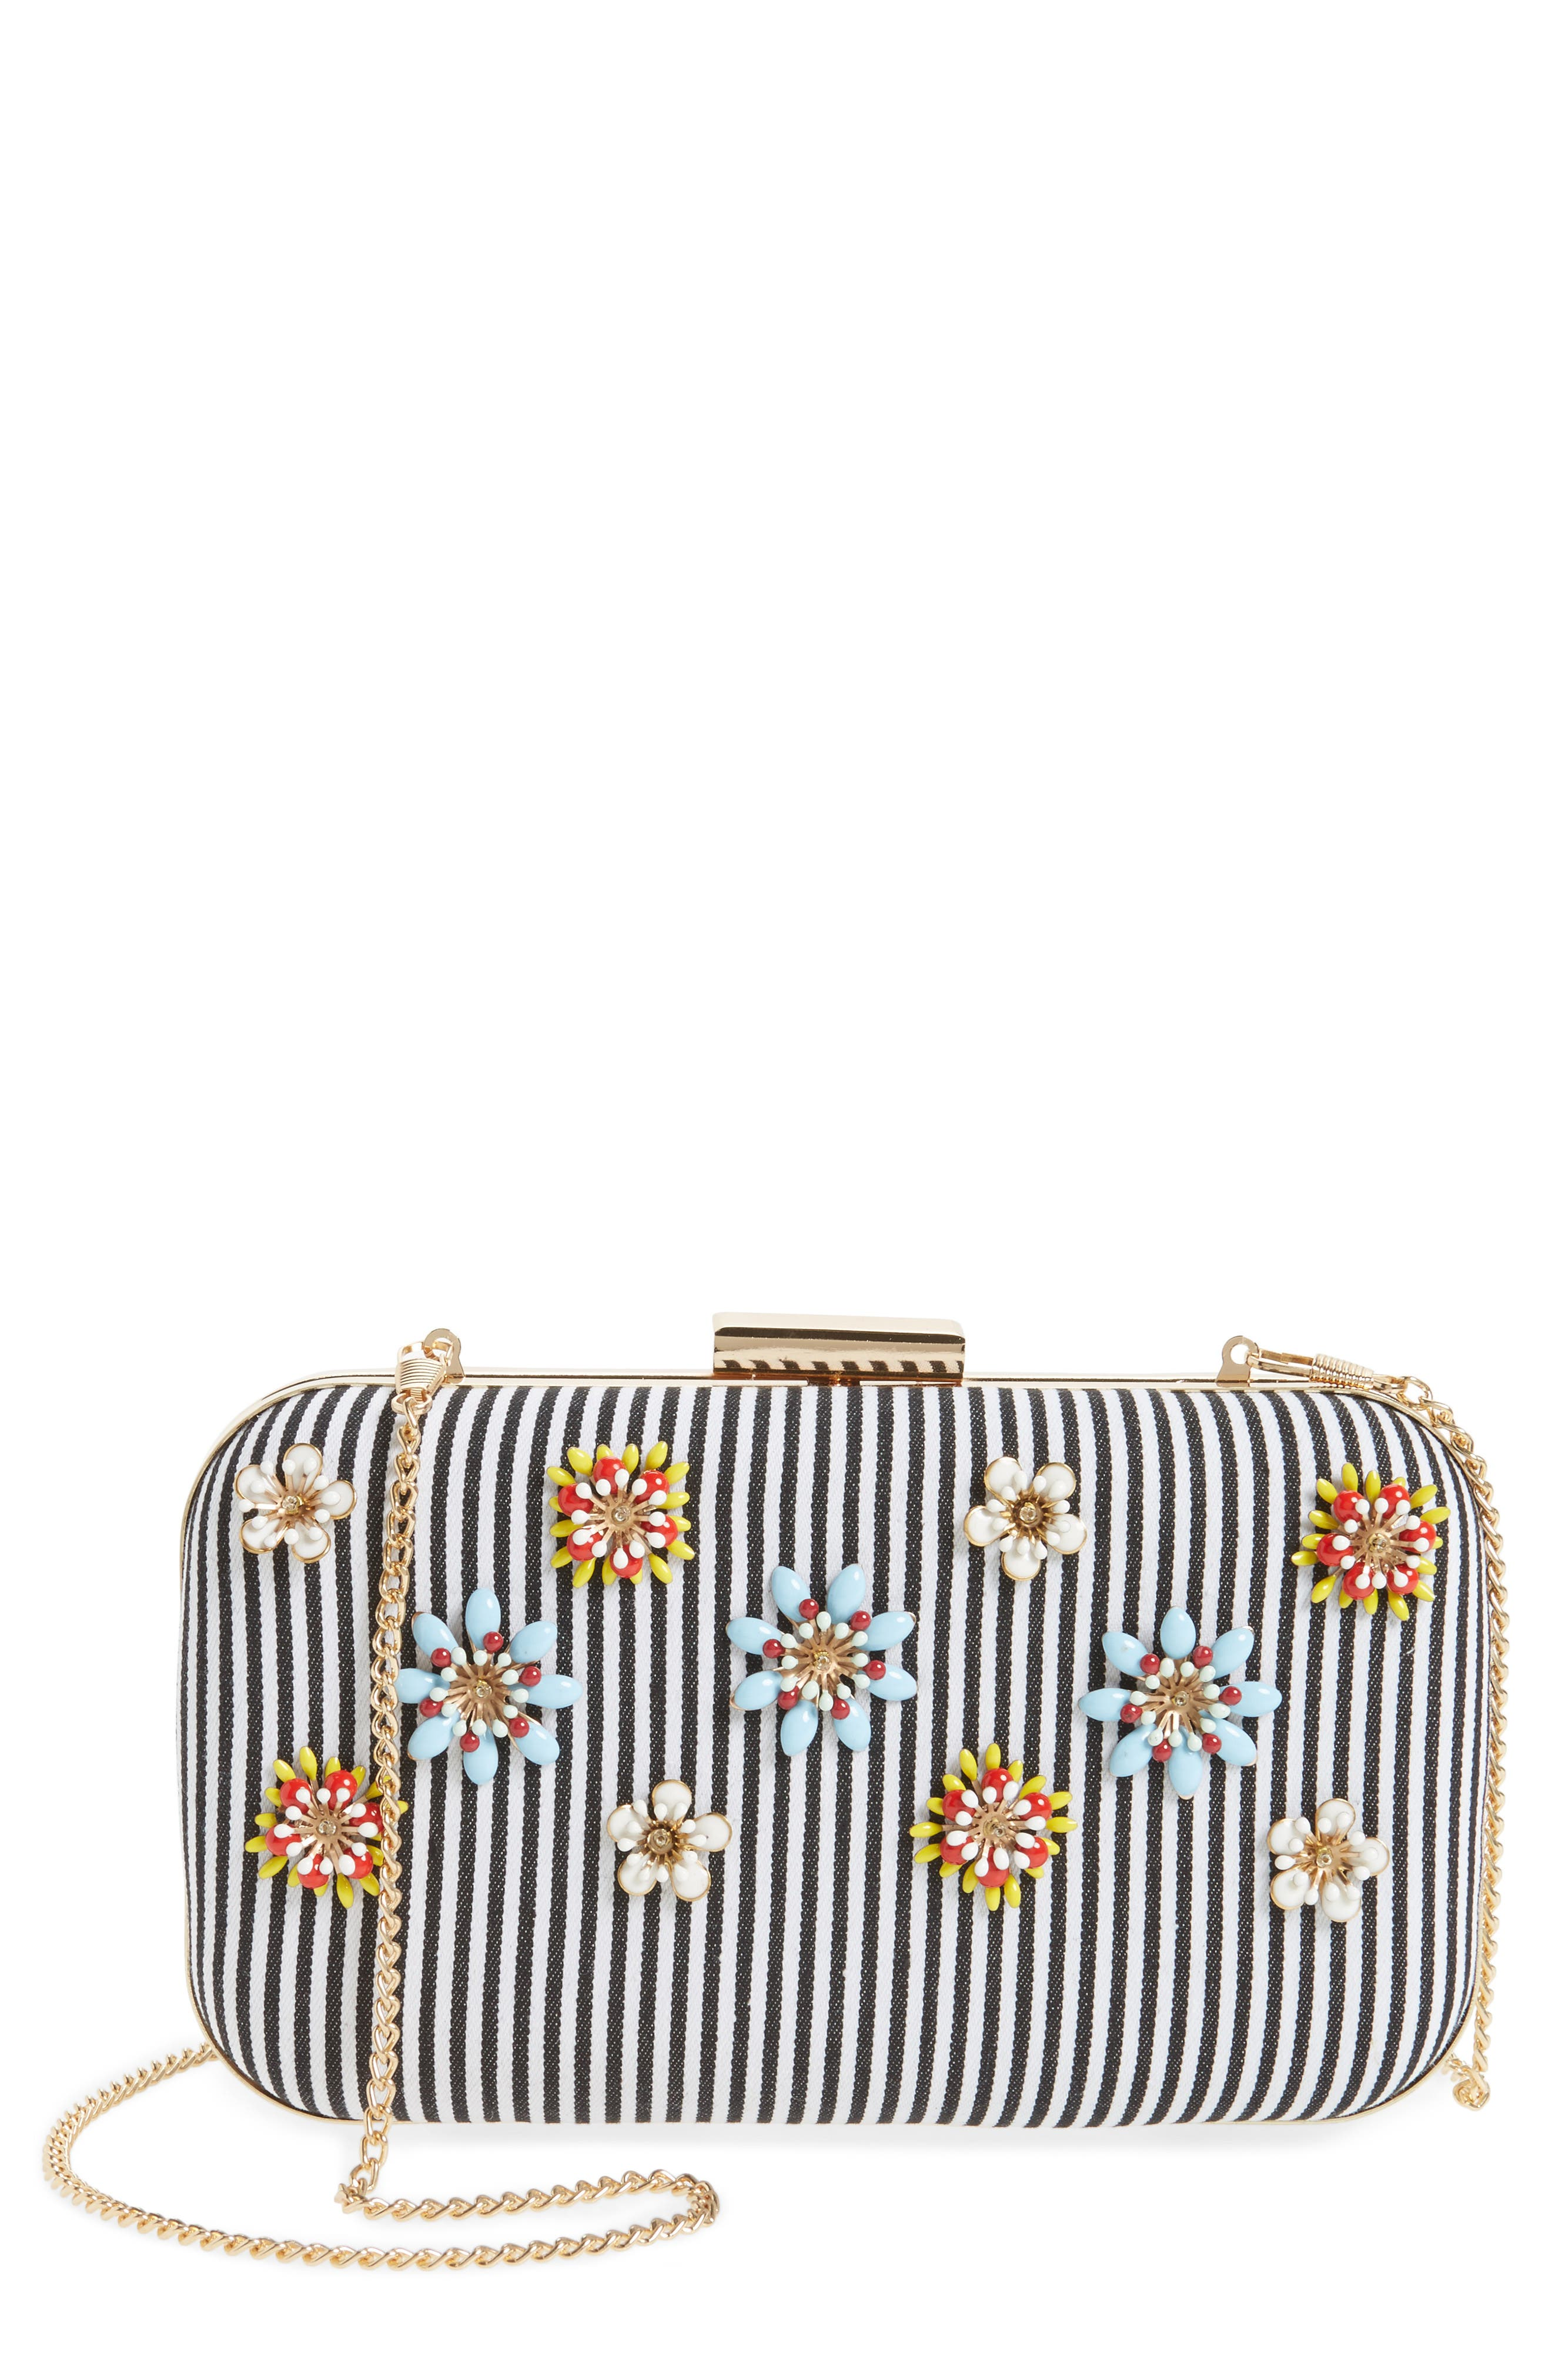 Alternate Image 1 Selected - Natasha Couture Floral Embellished Frame Clutch